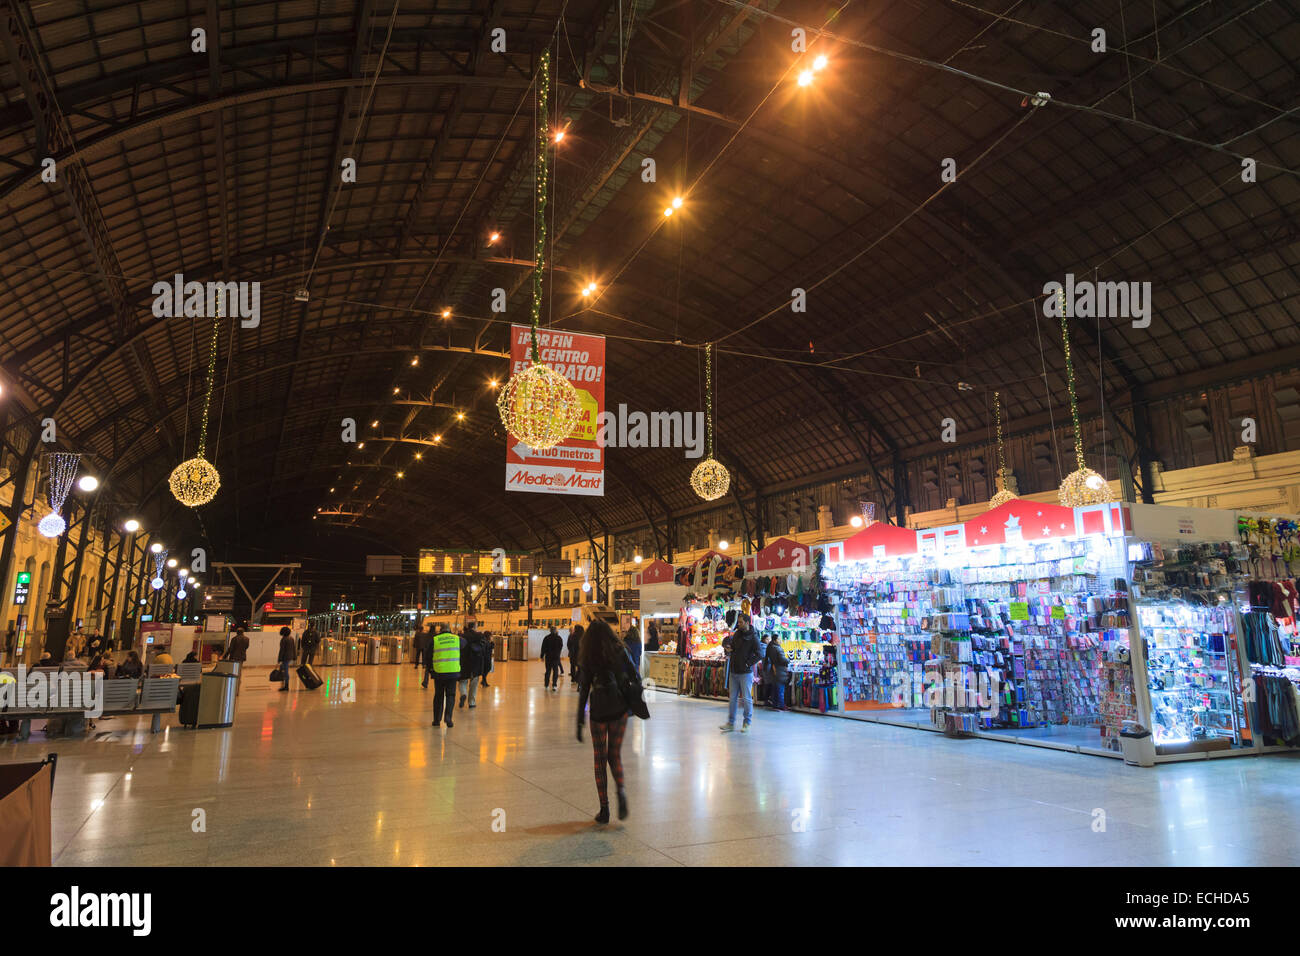 Concourse leading to platforms of the main railway station Estacio del Nord in Valencia Spain at night - Stock Image